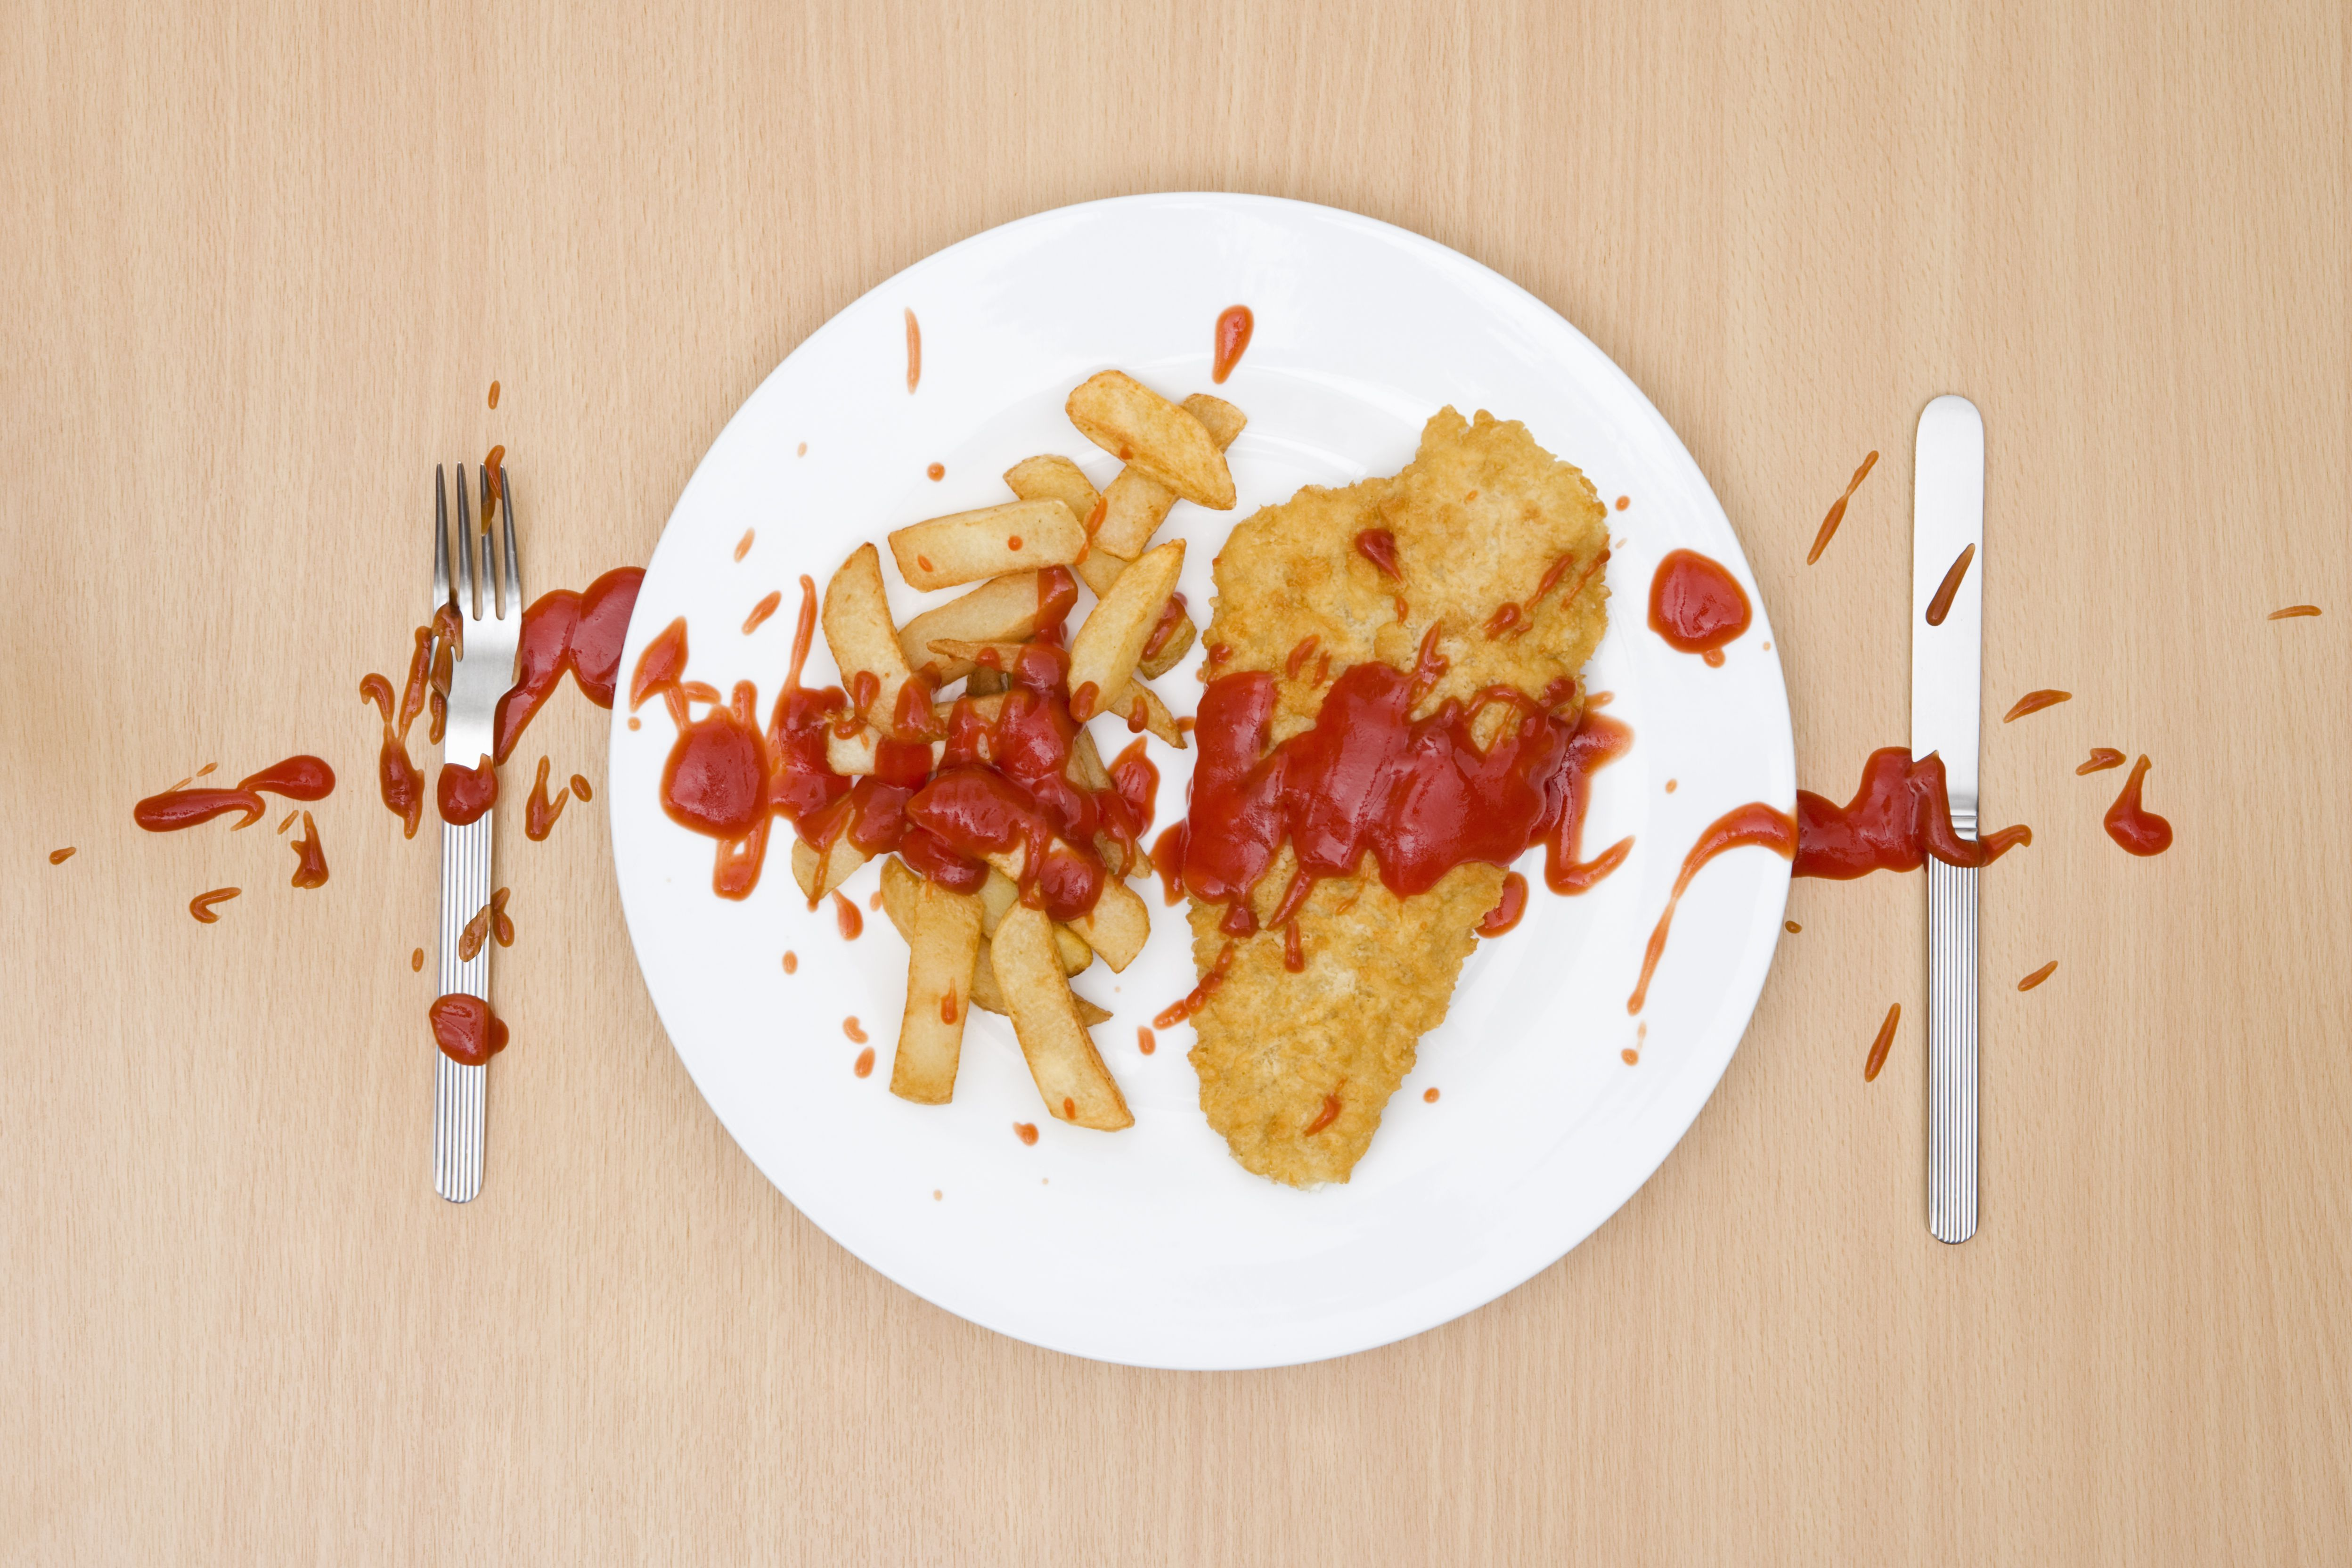 Fish and chips with spilled tomato ketchup